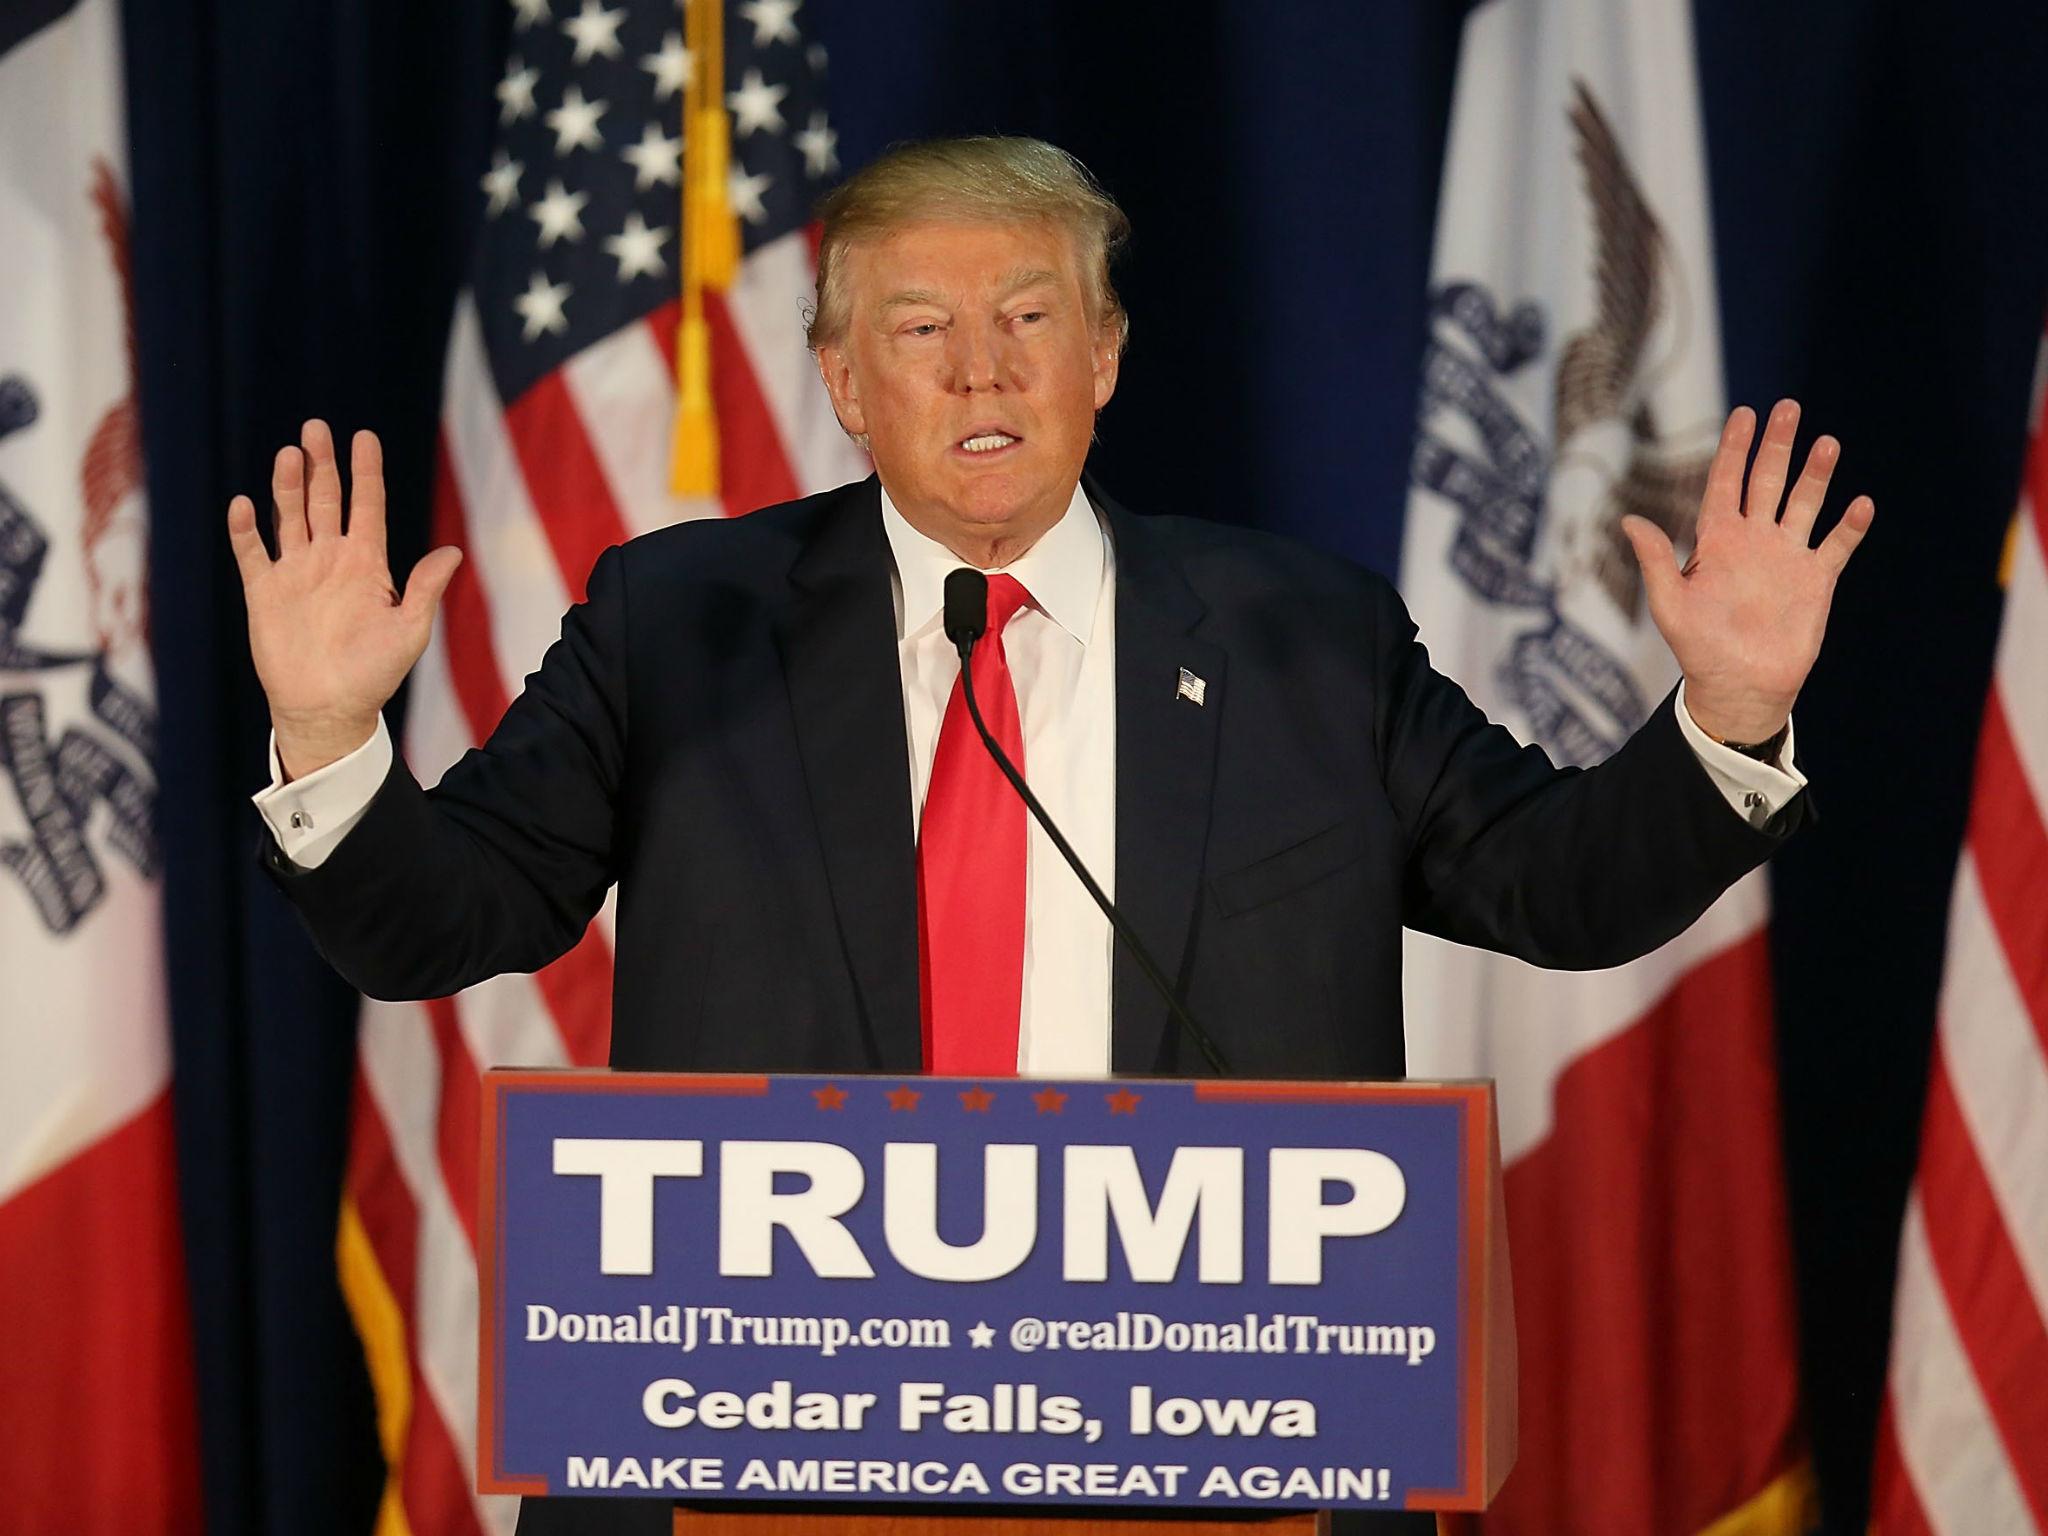 2048x1536 Donald Trump: GOP frontrunner calls sound technician 'son of a b***h' at  Florida rally | The Independent